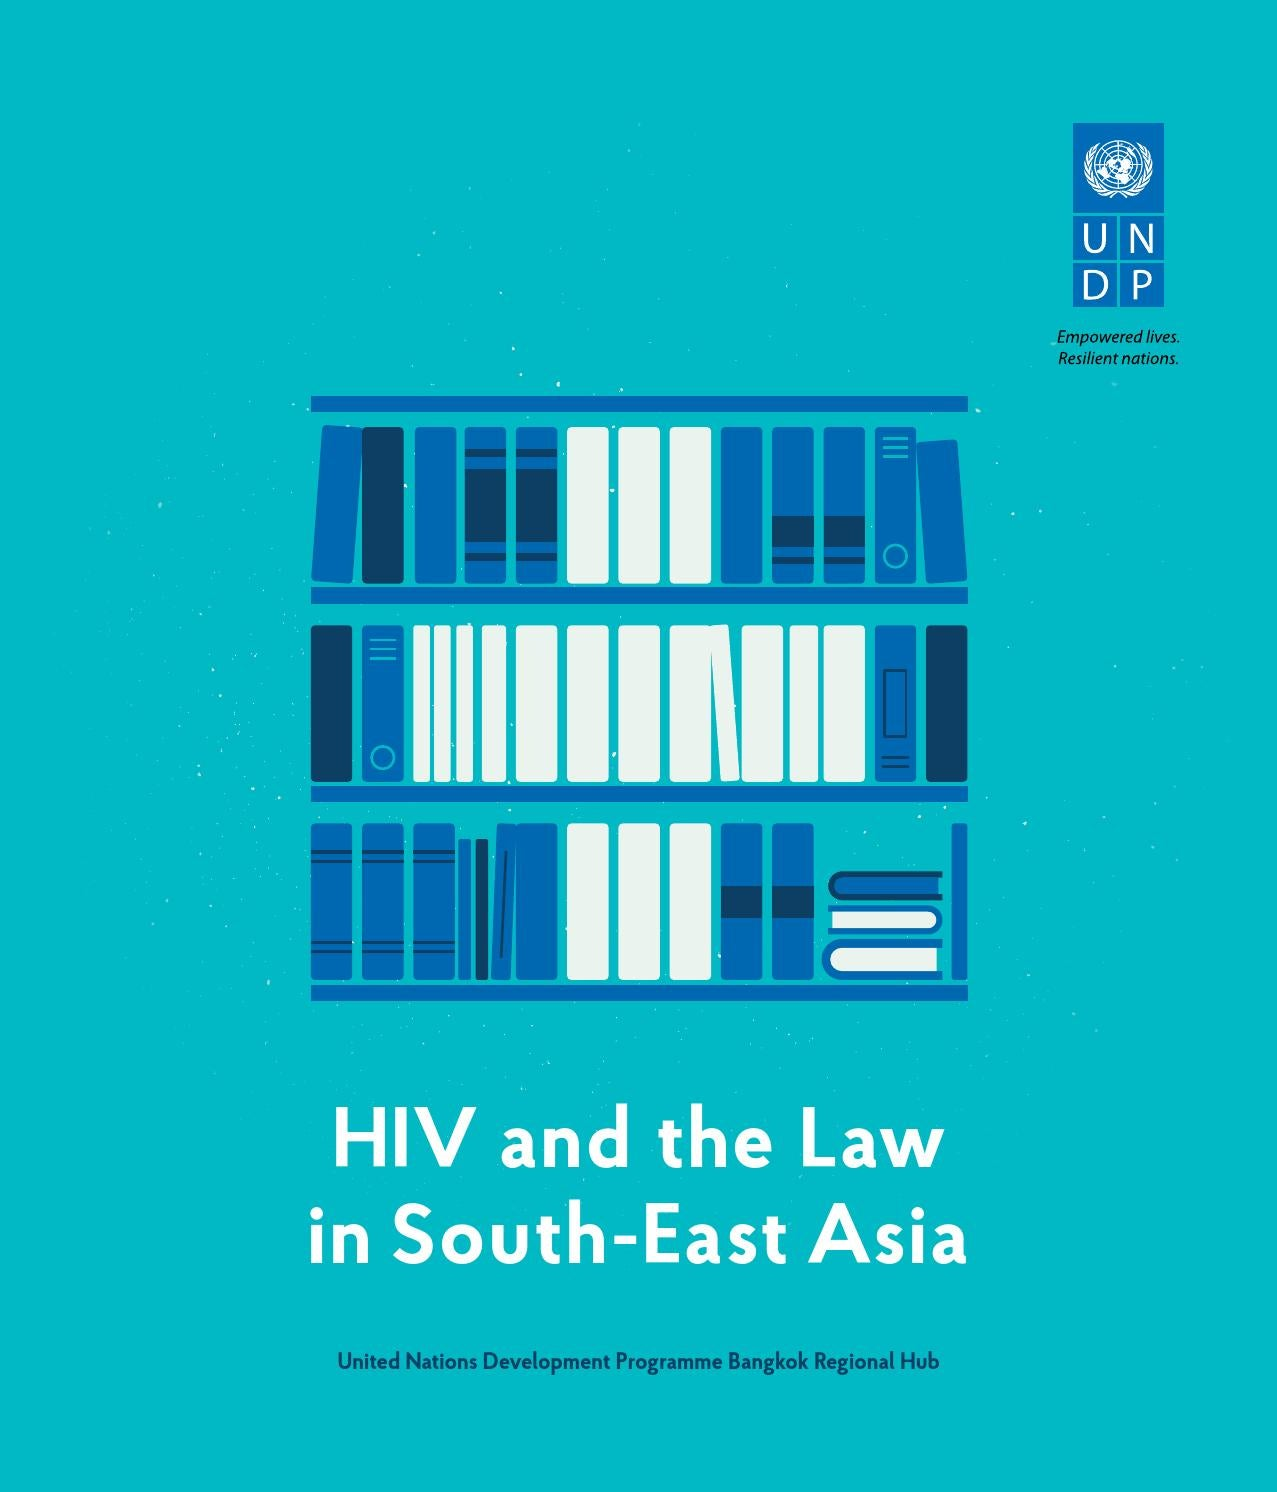 UNDP Report HIV and the Law in South-East Asia by UNIC